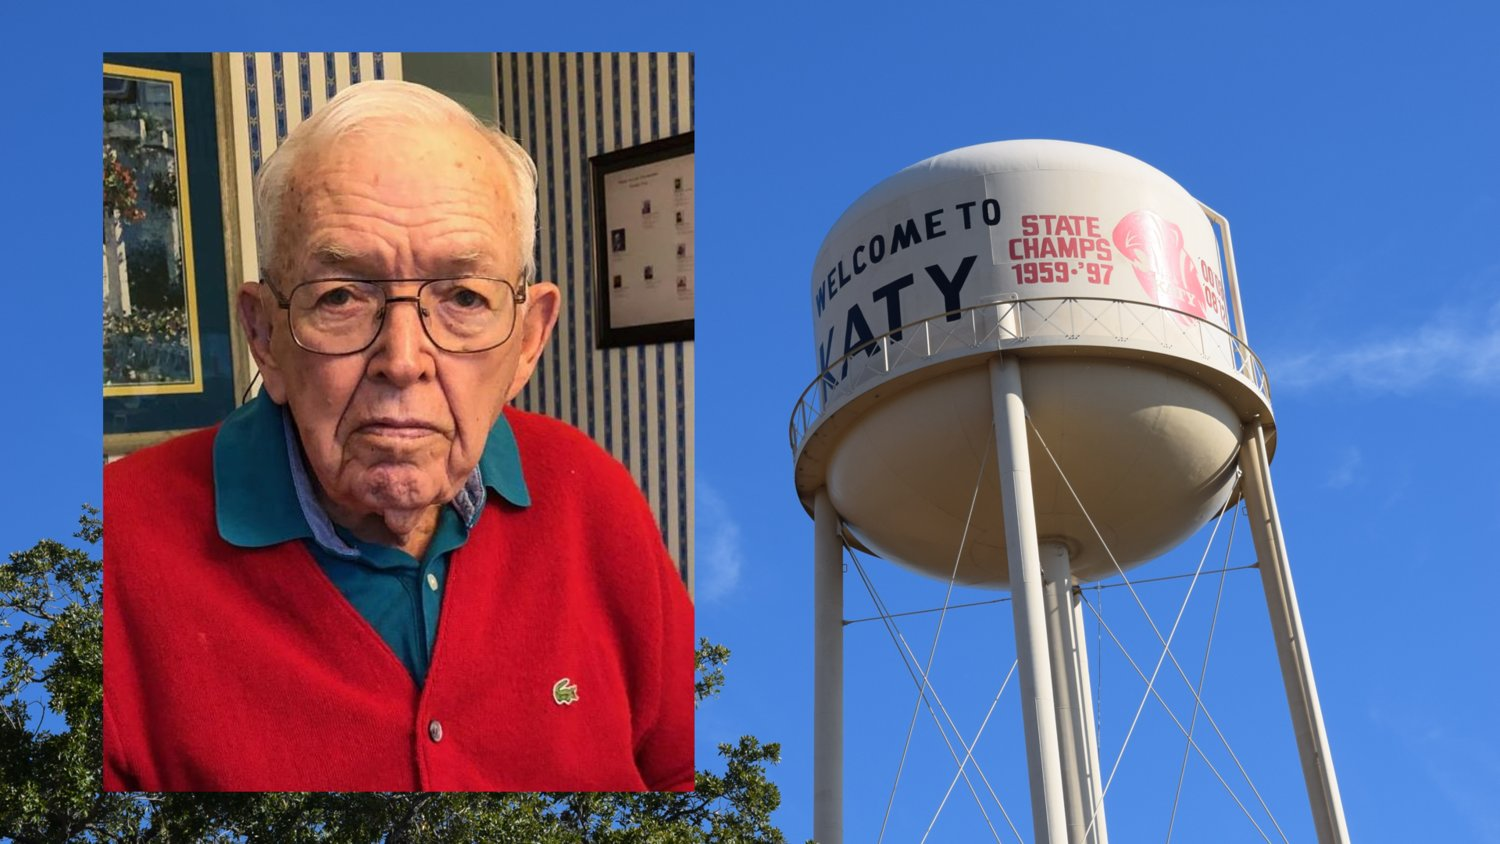 Ward Stanberry served as mayor of Katy from 1988 to 1991. Stanberry was known for being active in the community both as mayor and as an entrepreneur. He is deeply missed by his family and friends.